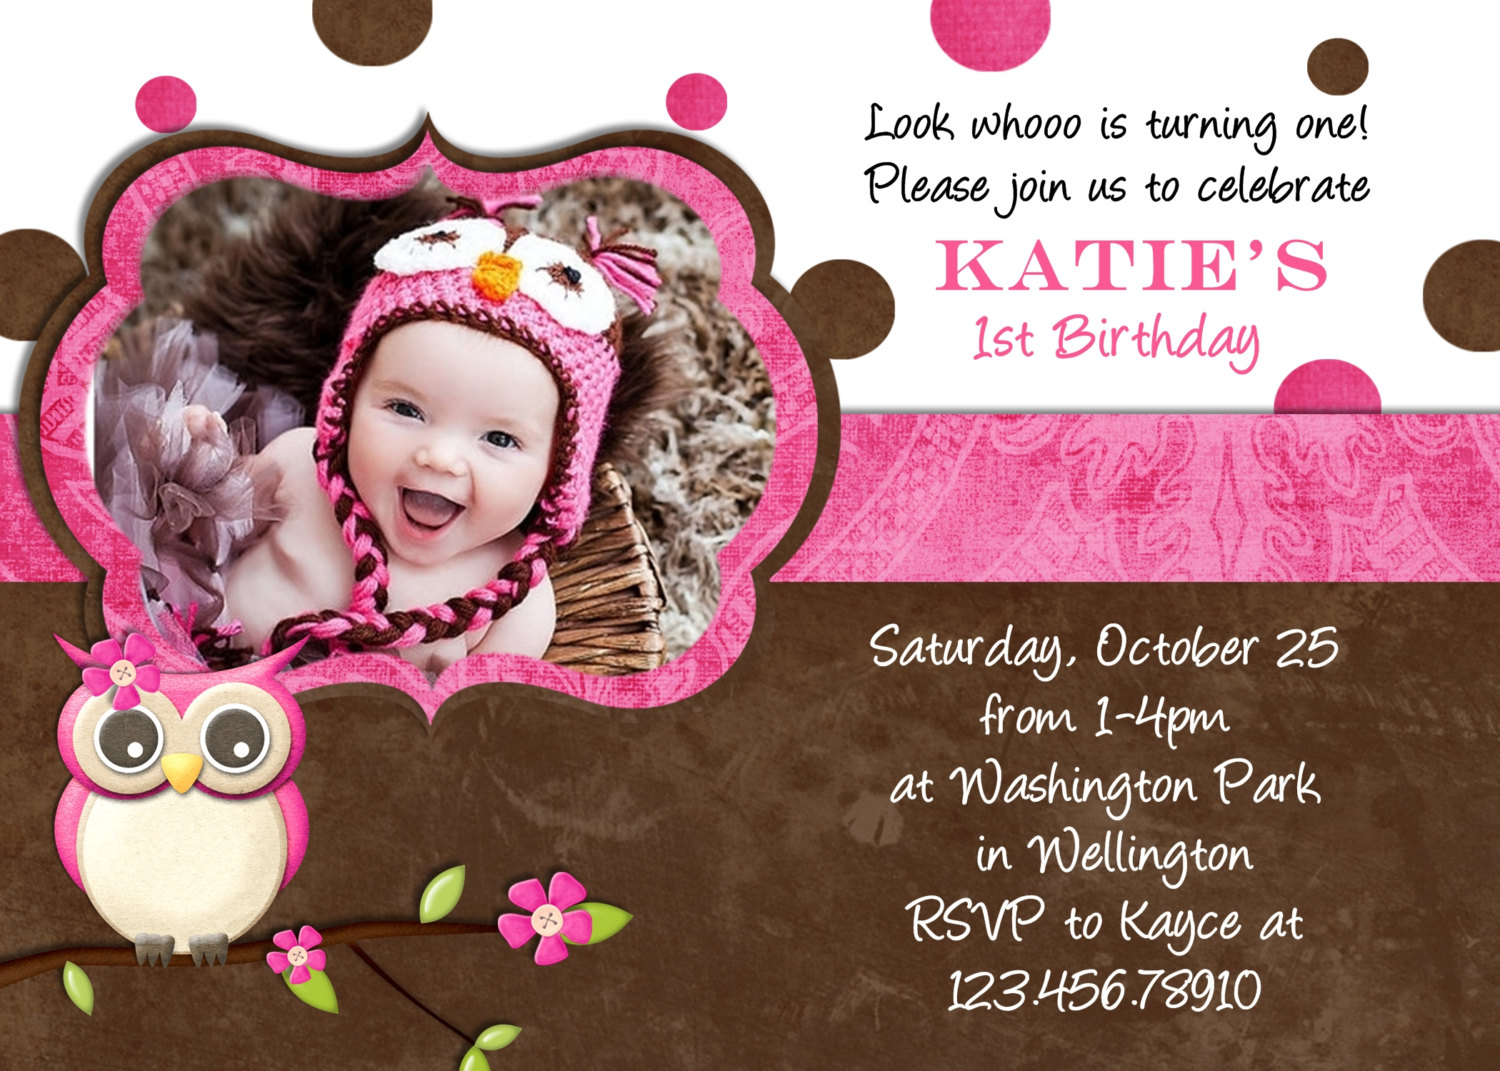 design invitation card for birthday ; birthday-invitation-cards-also-sweet-pink-baby-completing-adding-by-some-good-colorful-design-also-brown-pink-background-looked-so-unique-and-simple